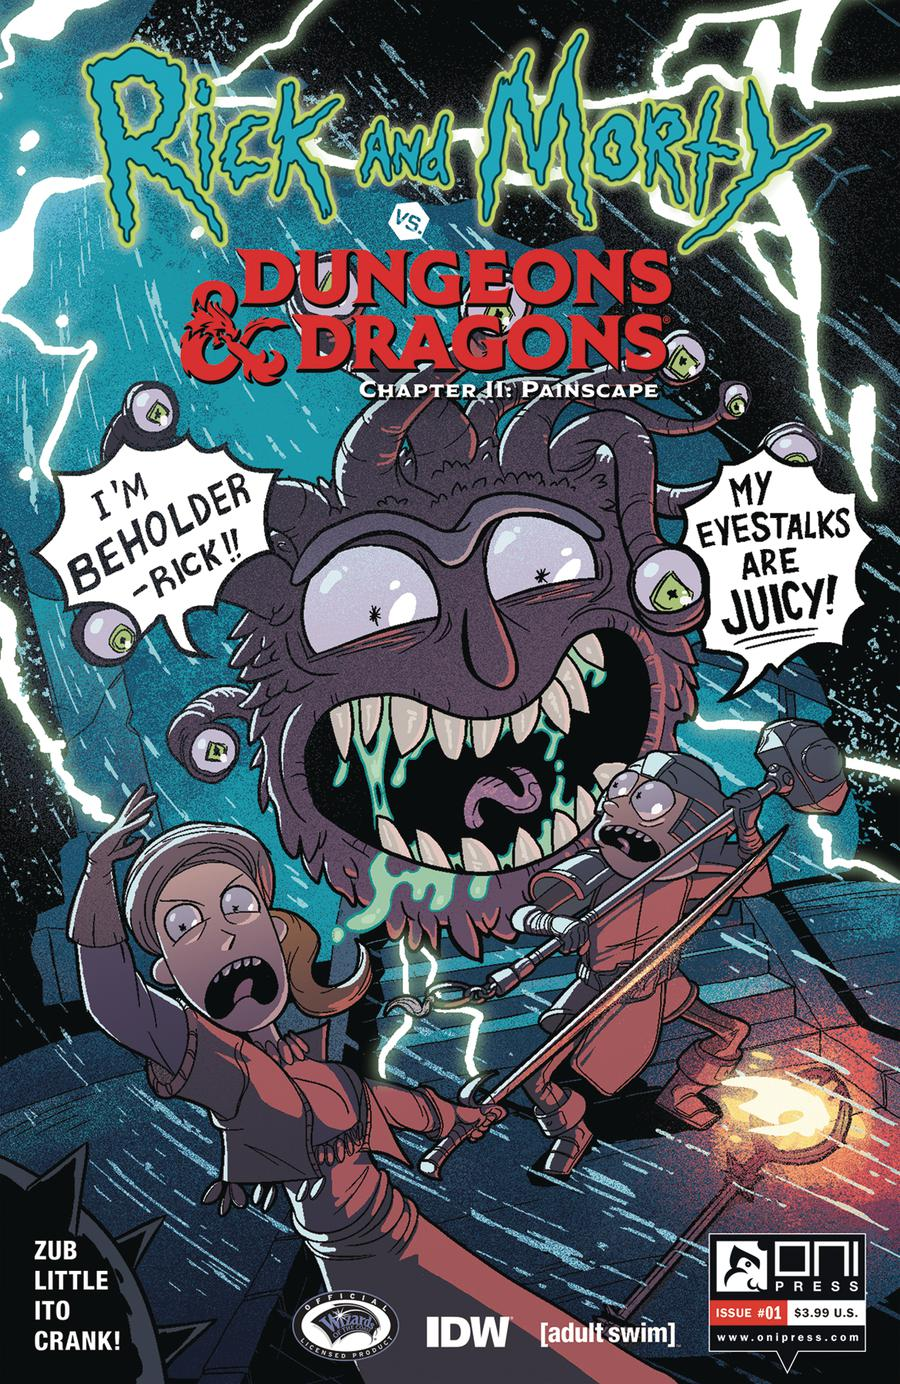 Rick And Morty vs Dungeons & Dragons Chapter II Painscape #1 Cover B Variant Jim Zub Cover